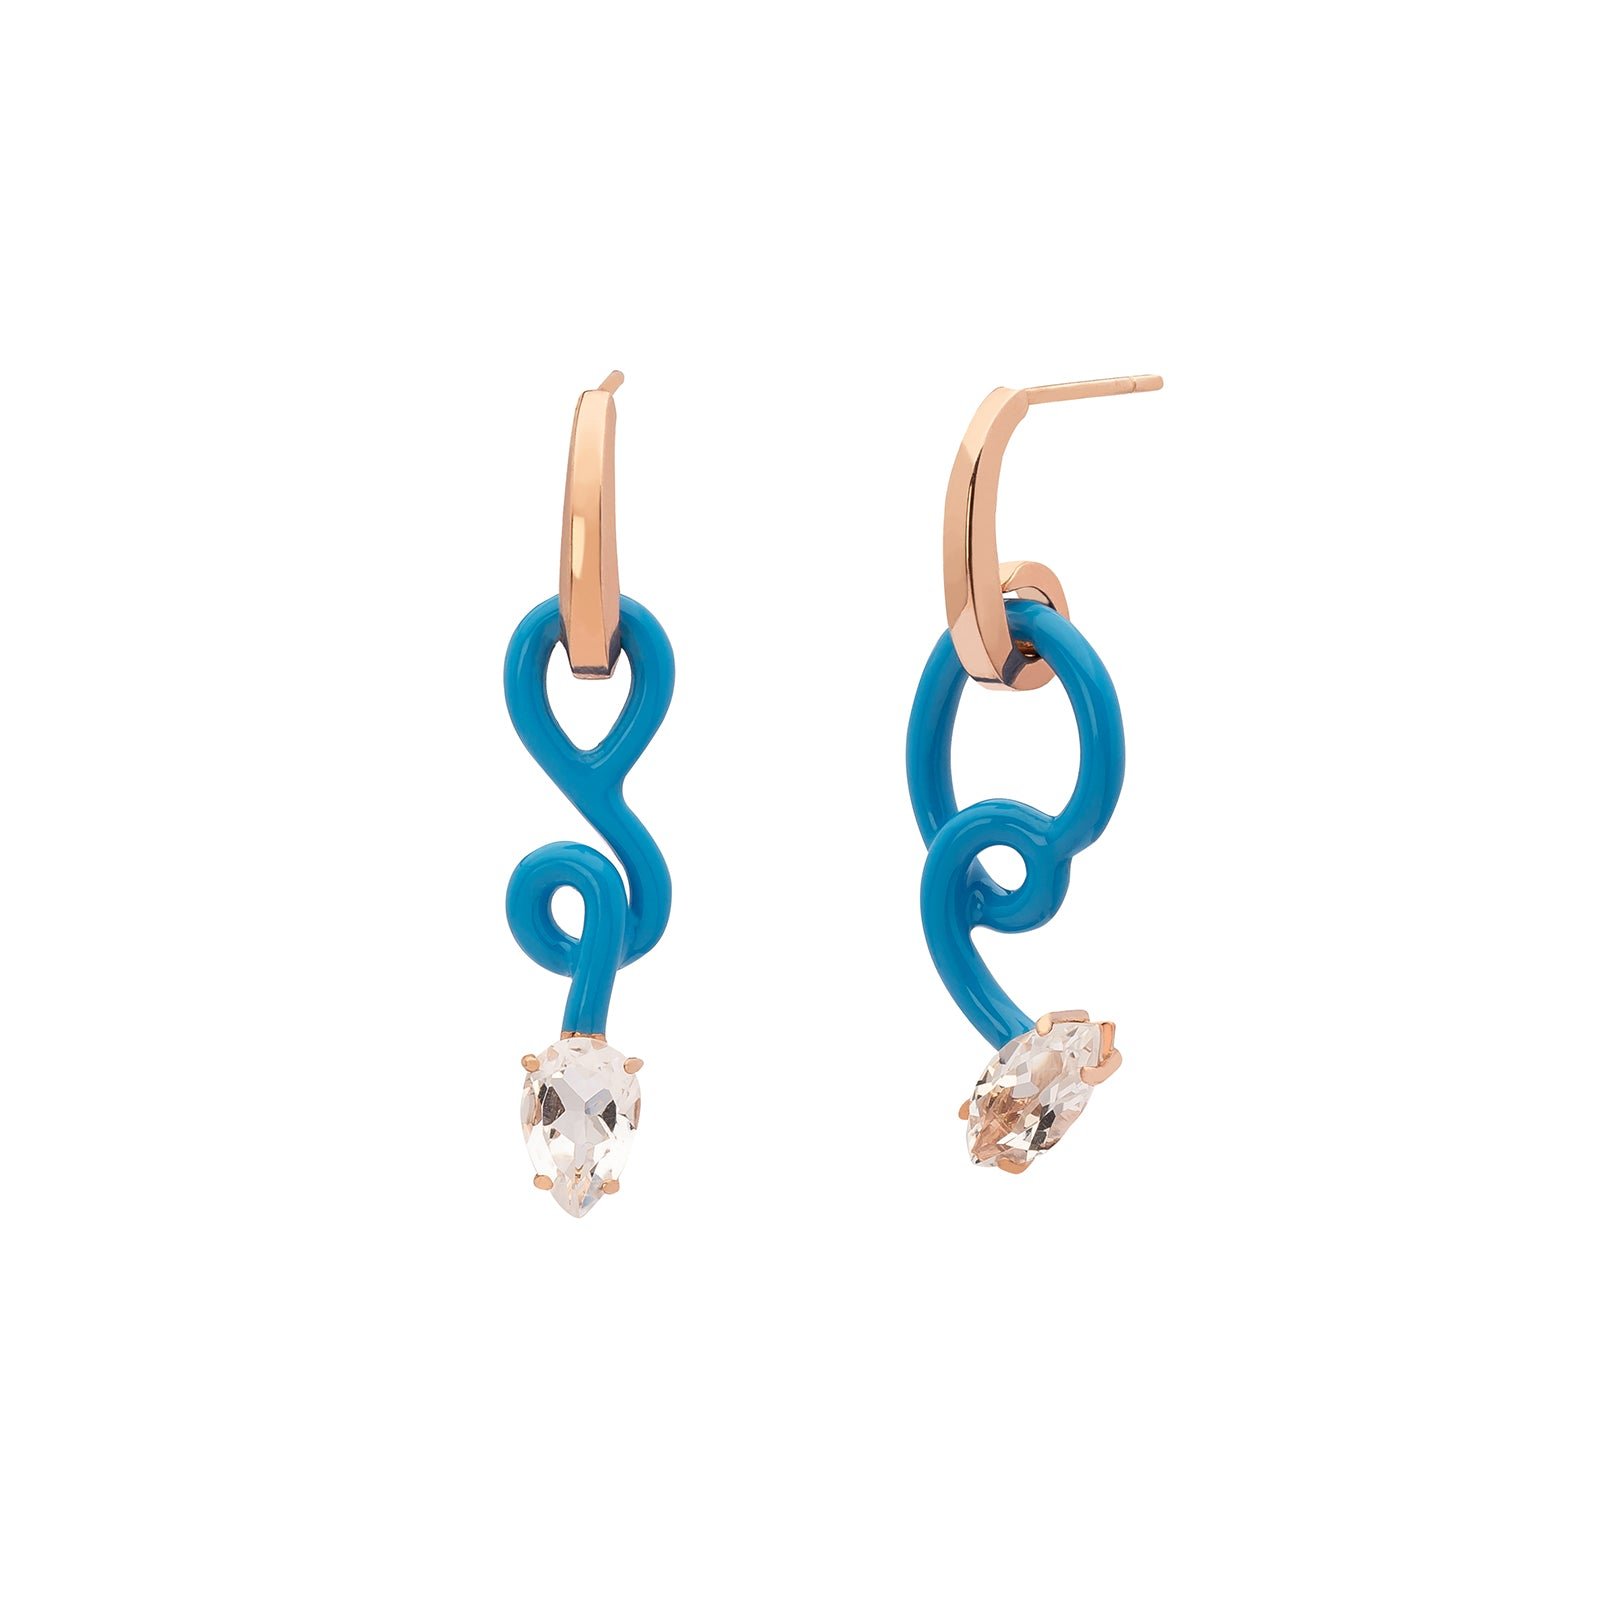 Bea Bongiasca Asymmetrical Vine Baby Hoop Earrings - Turquoise Enamel - Earrings - Broken English Jewelry